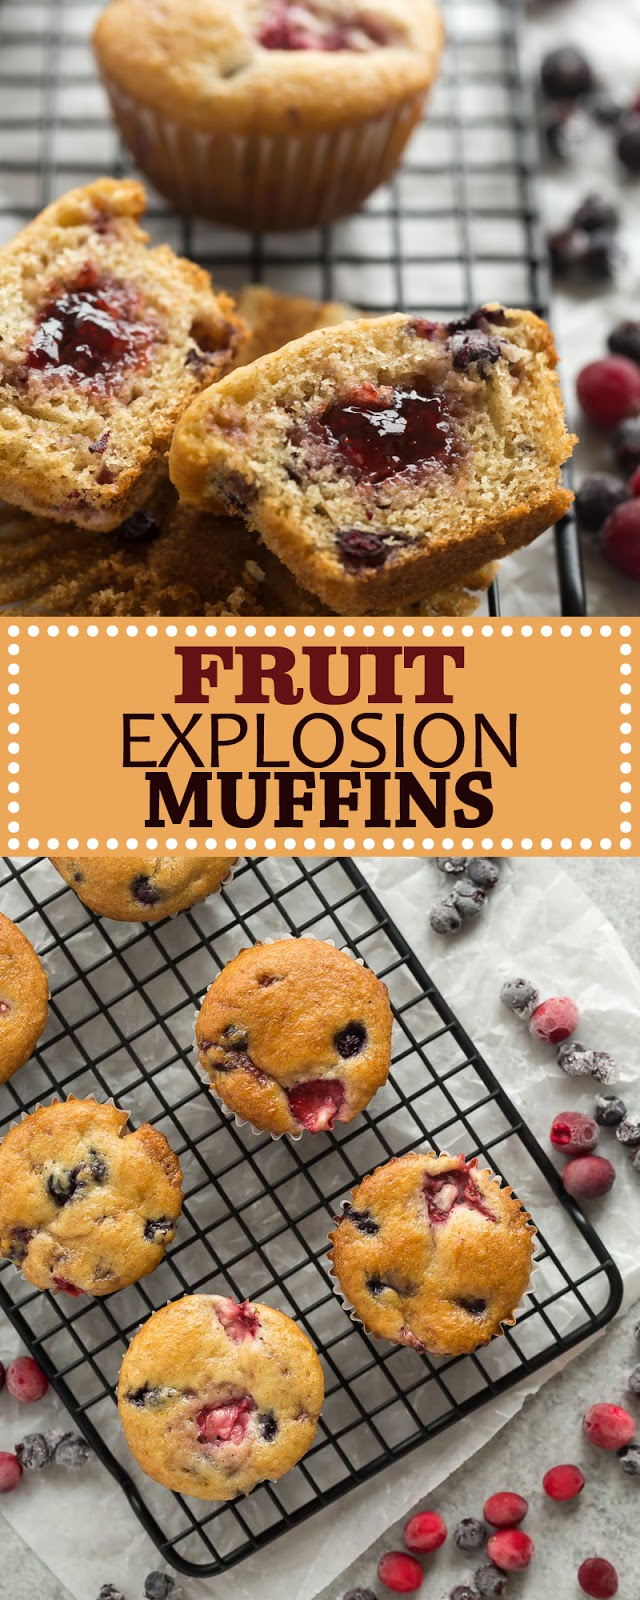 FRUIT EXPLOSION MUFFINS